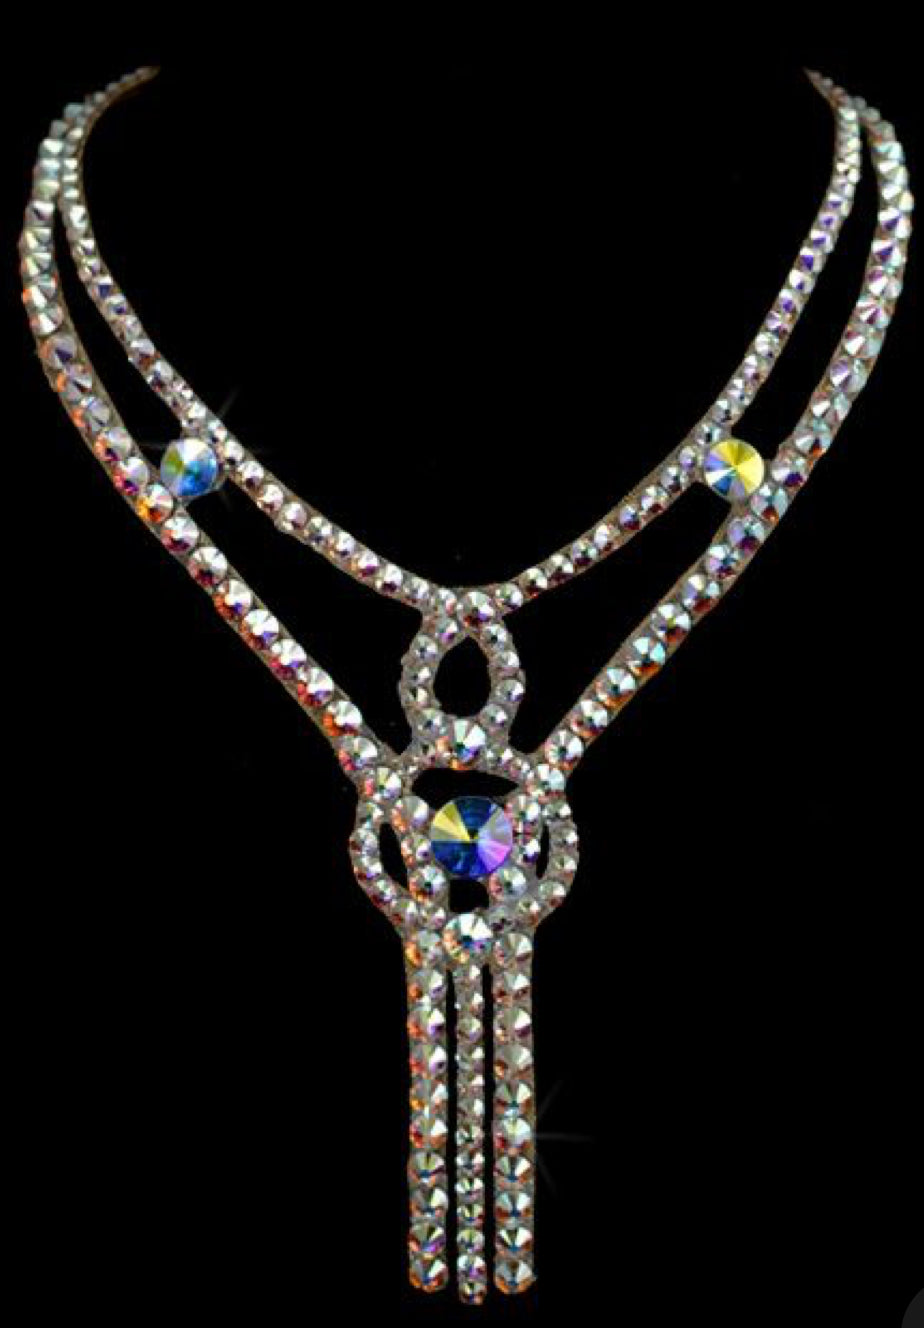 The Violet Style Swarovski Crystal Necklace